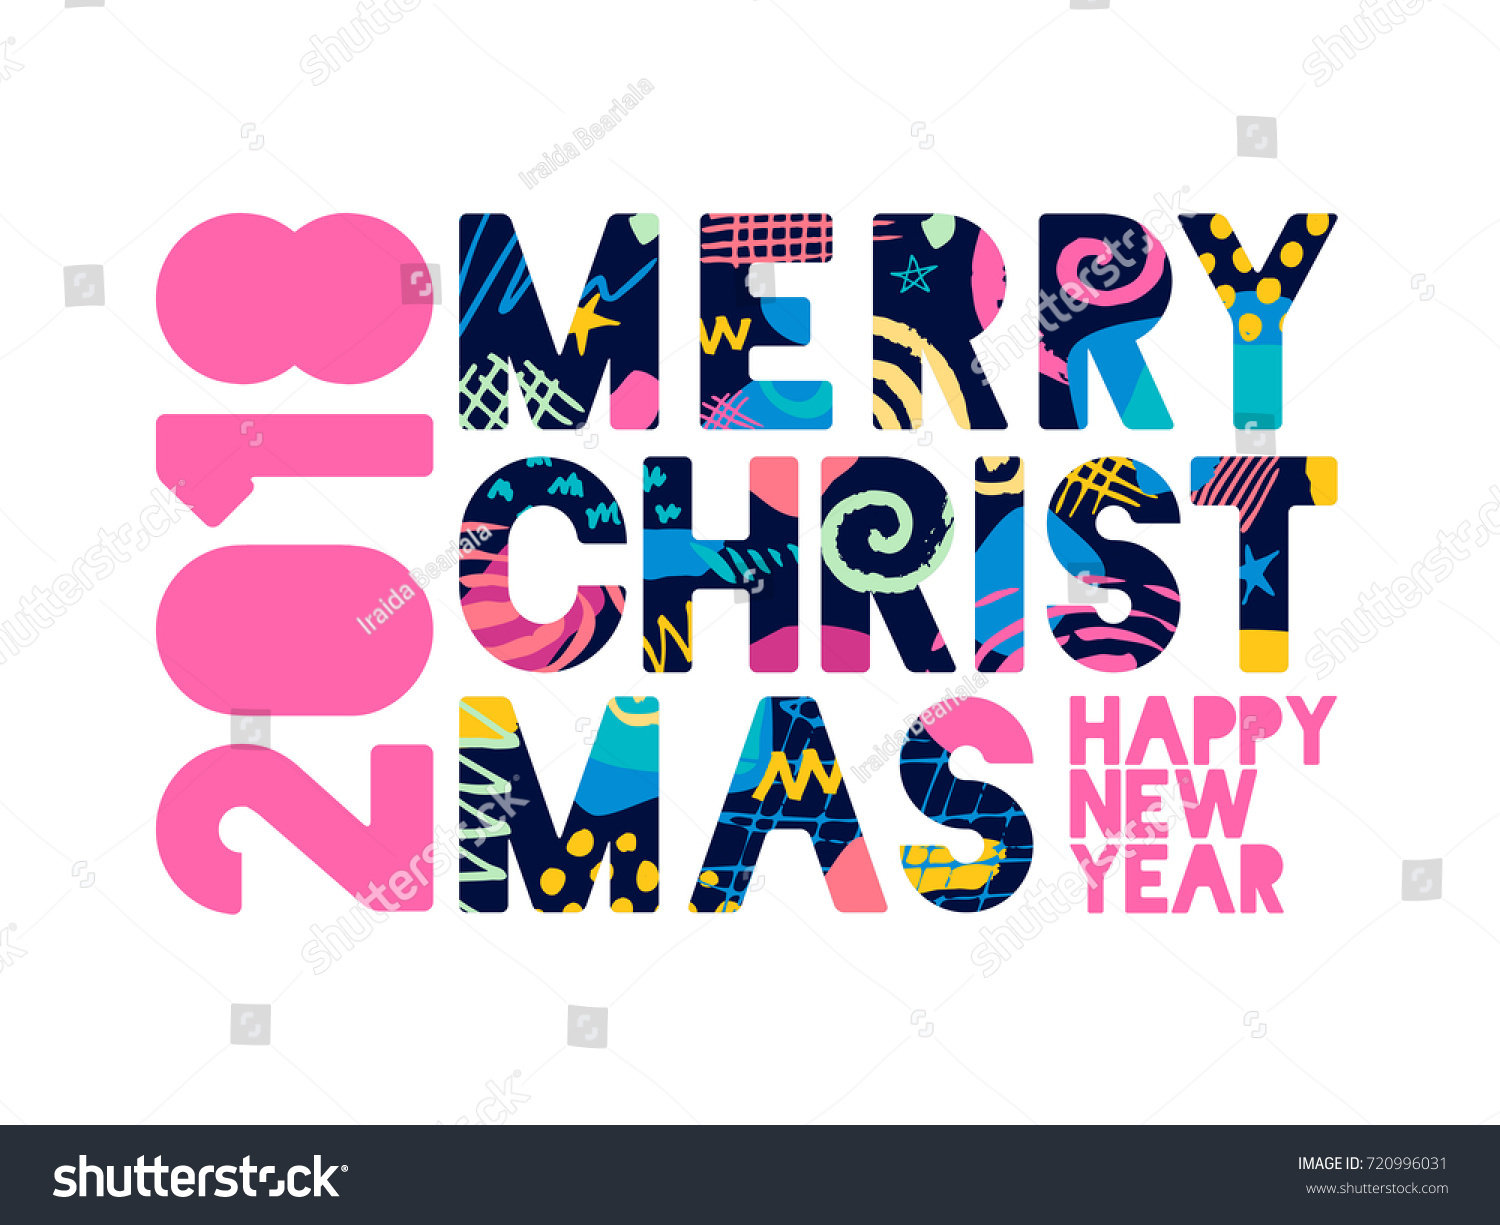 2018 merry christmas happy new year greeting card with abstract elements on white background